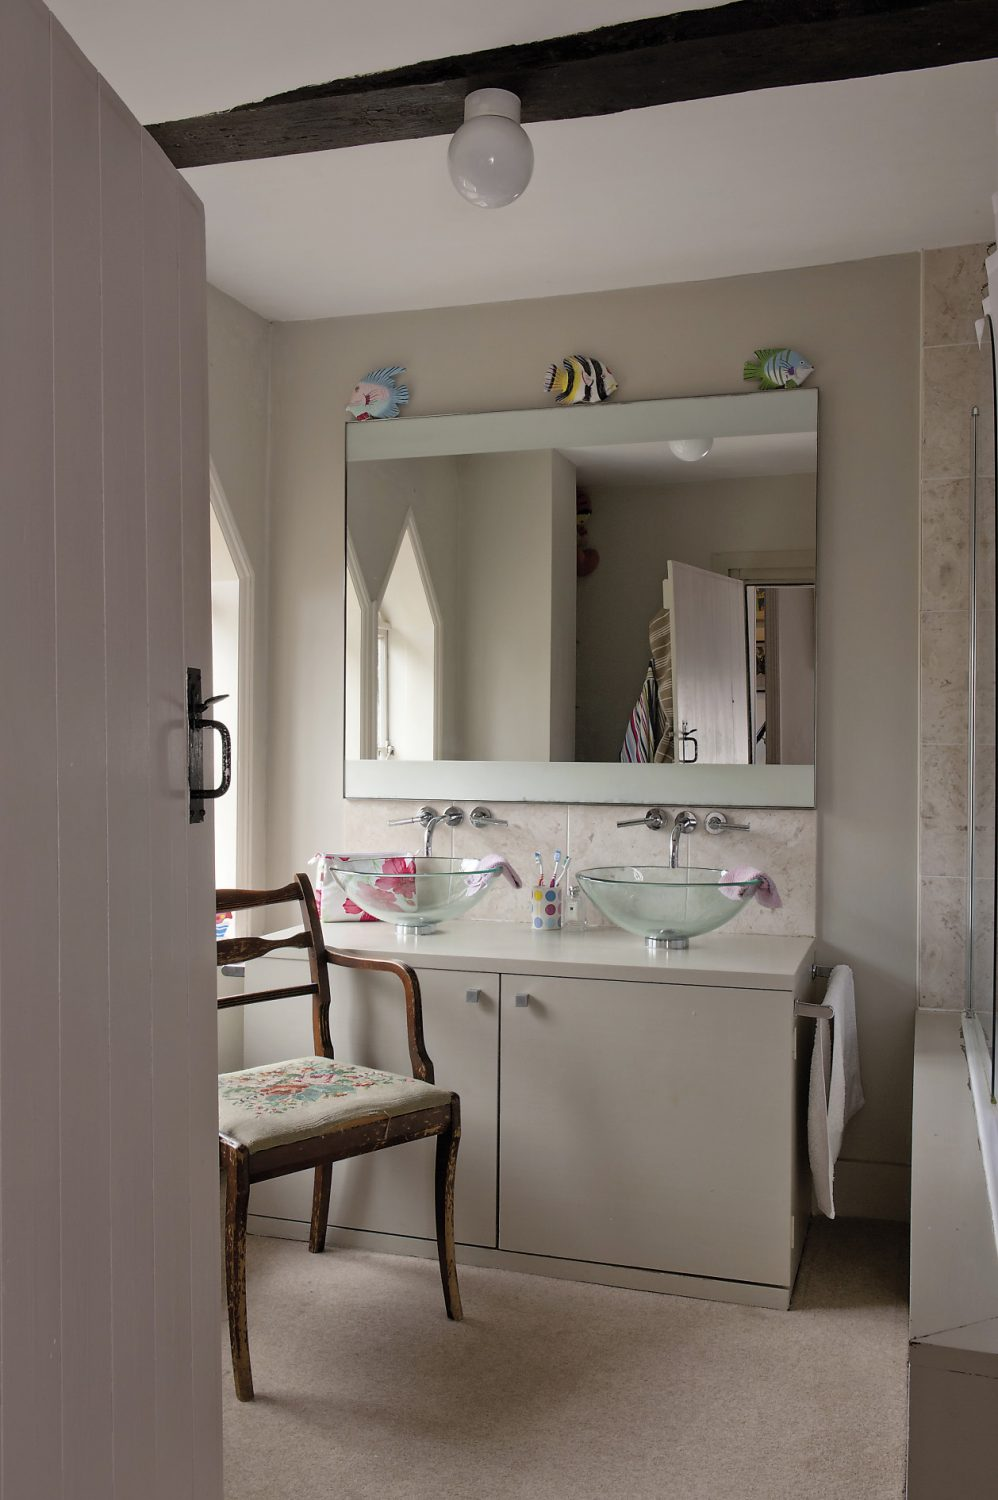 A newly refurbished bathroom features strikingly contemporary glass twin basins